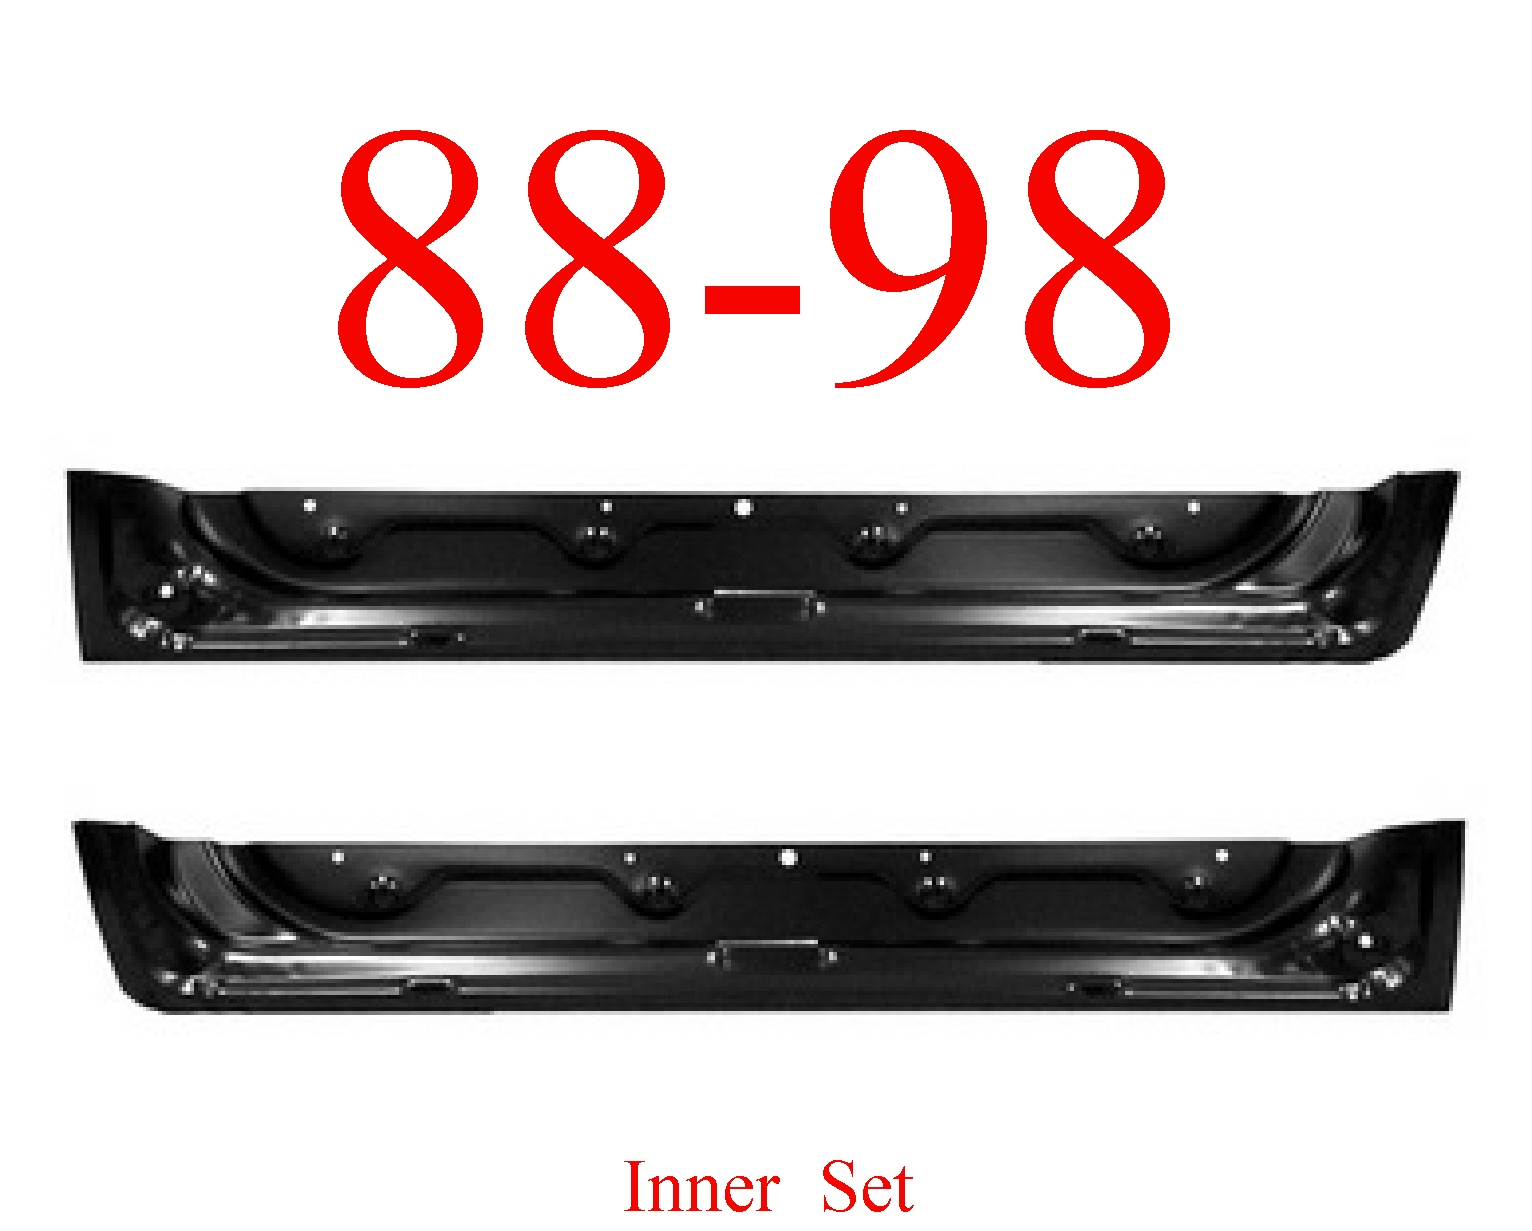 88-98 Chevy Front Inner Door Bottom Set